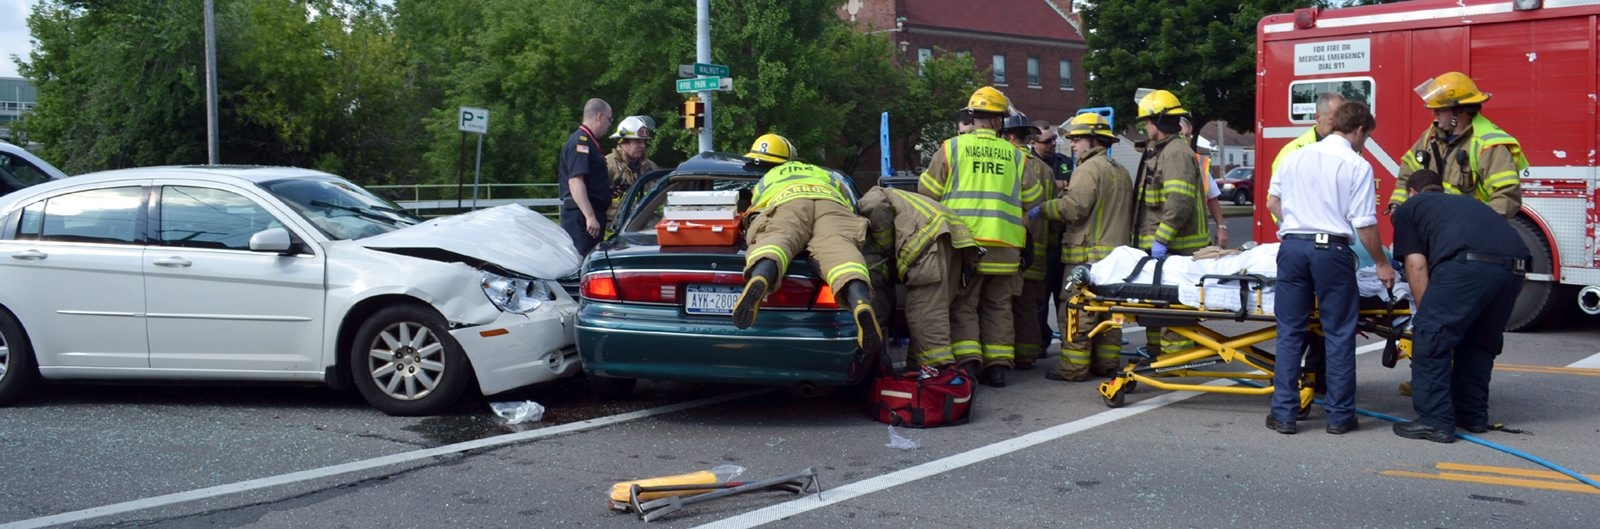 Niagara Falls firefighters used the jaws of life to extricate at least one injured person. (Larry Kensinger/Contributor)